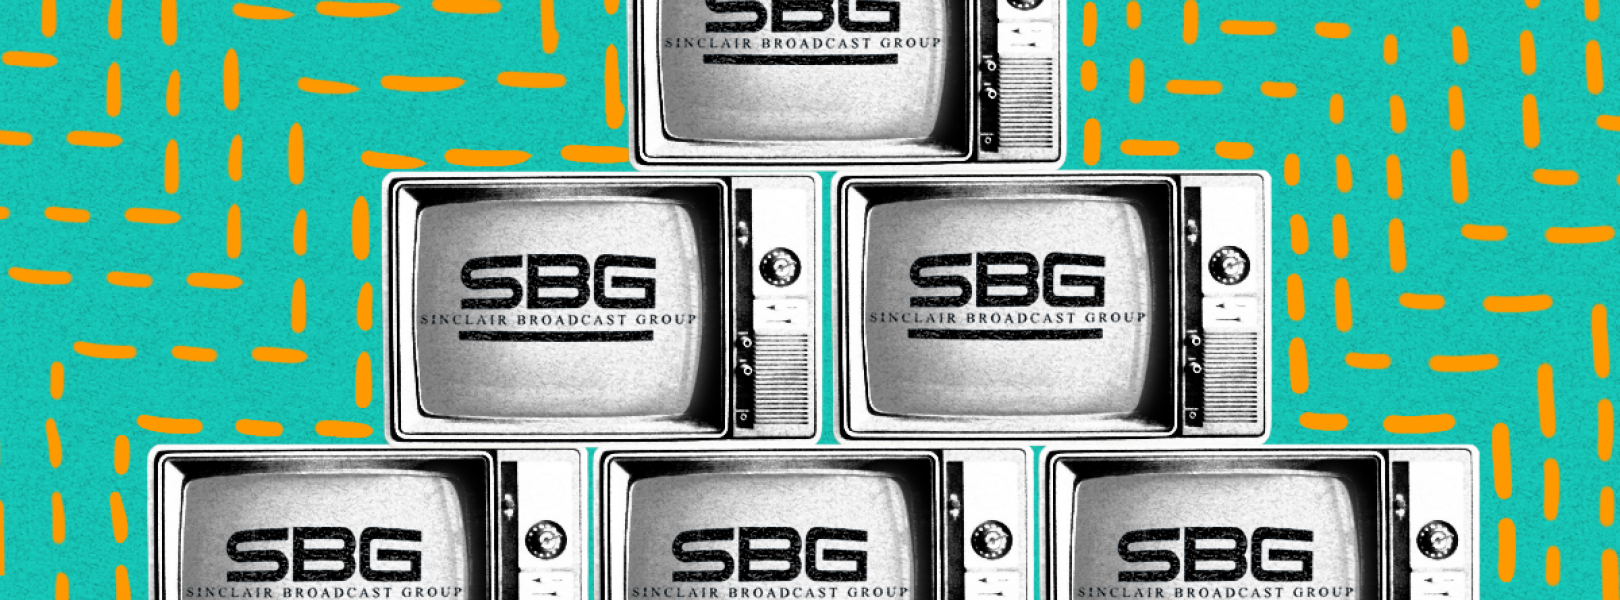 Sinclair_Teal_and_Orange_Background.png